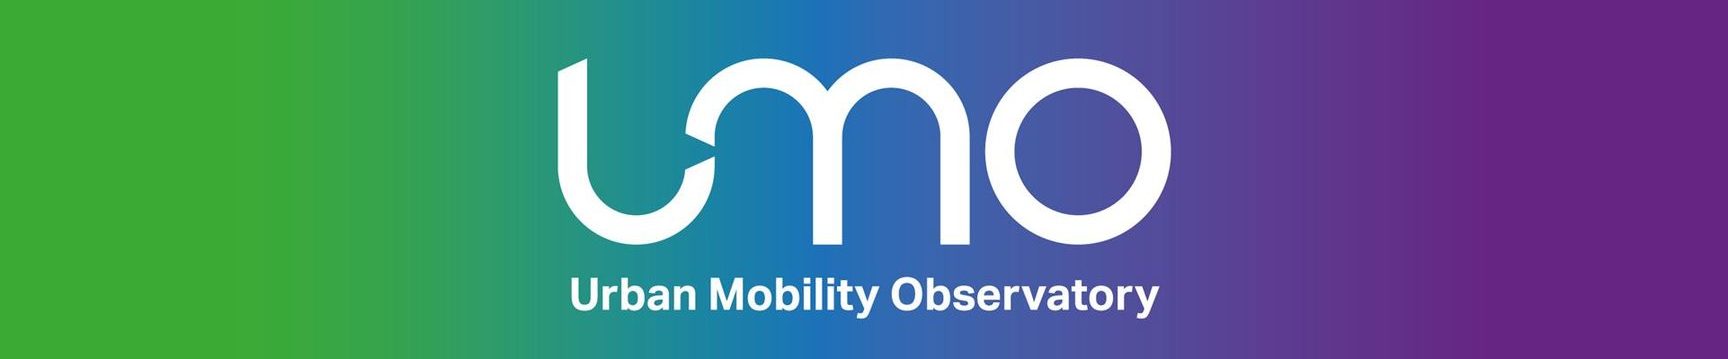 Urban Mobility Observatory